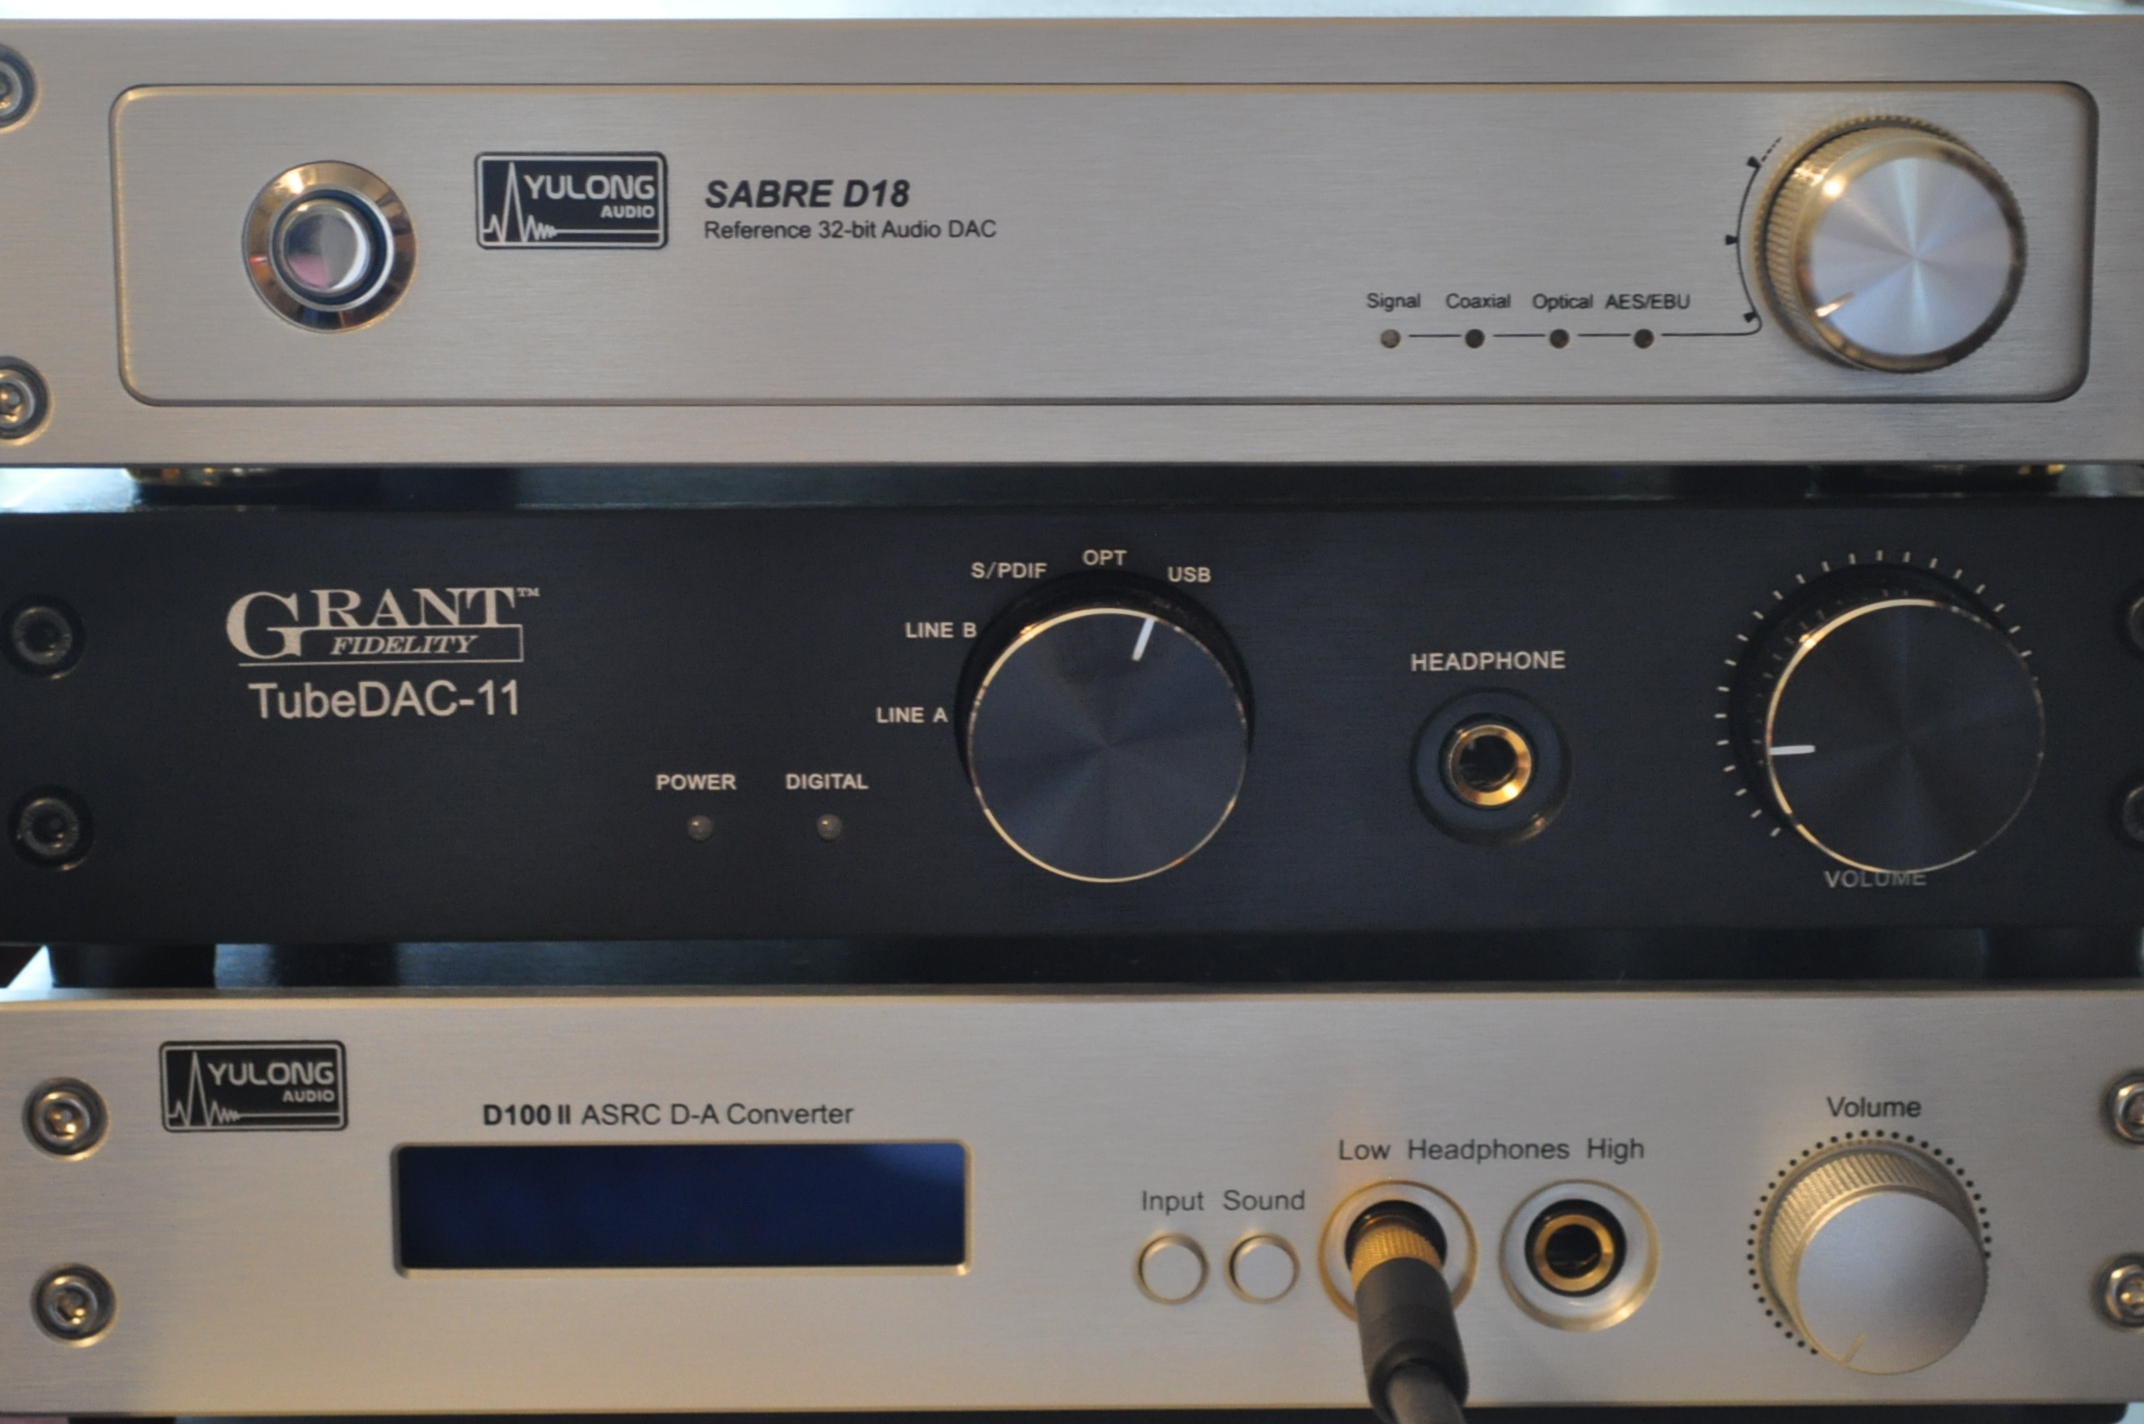 Review: Yulong D100 DAC/amp - reference quality with a